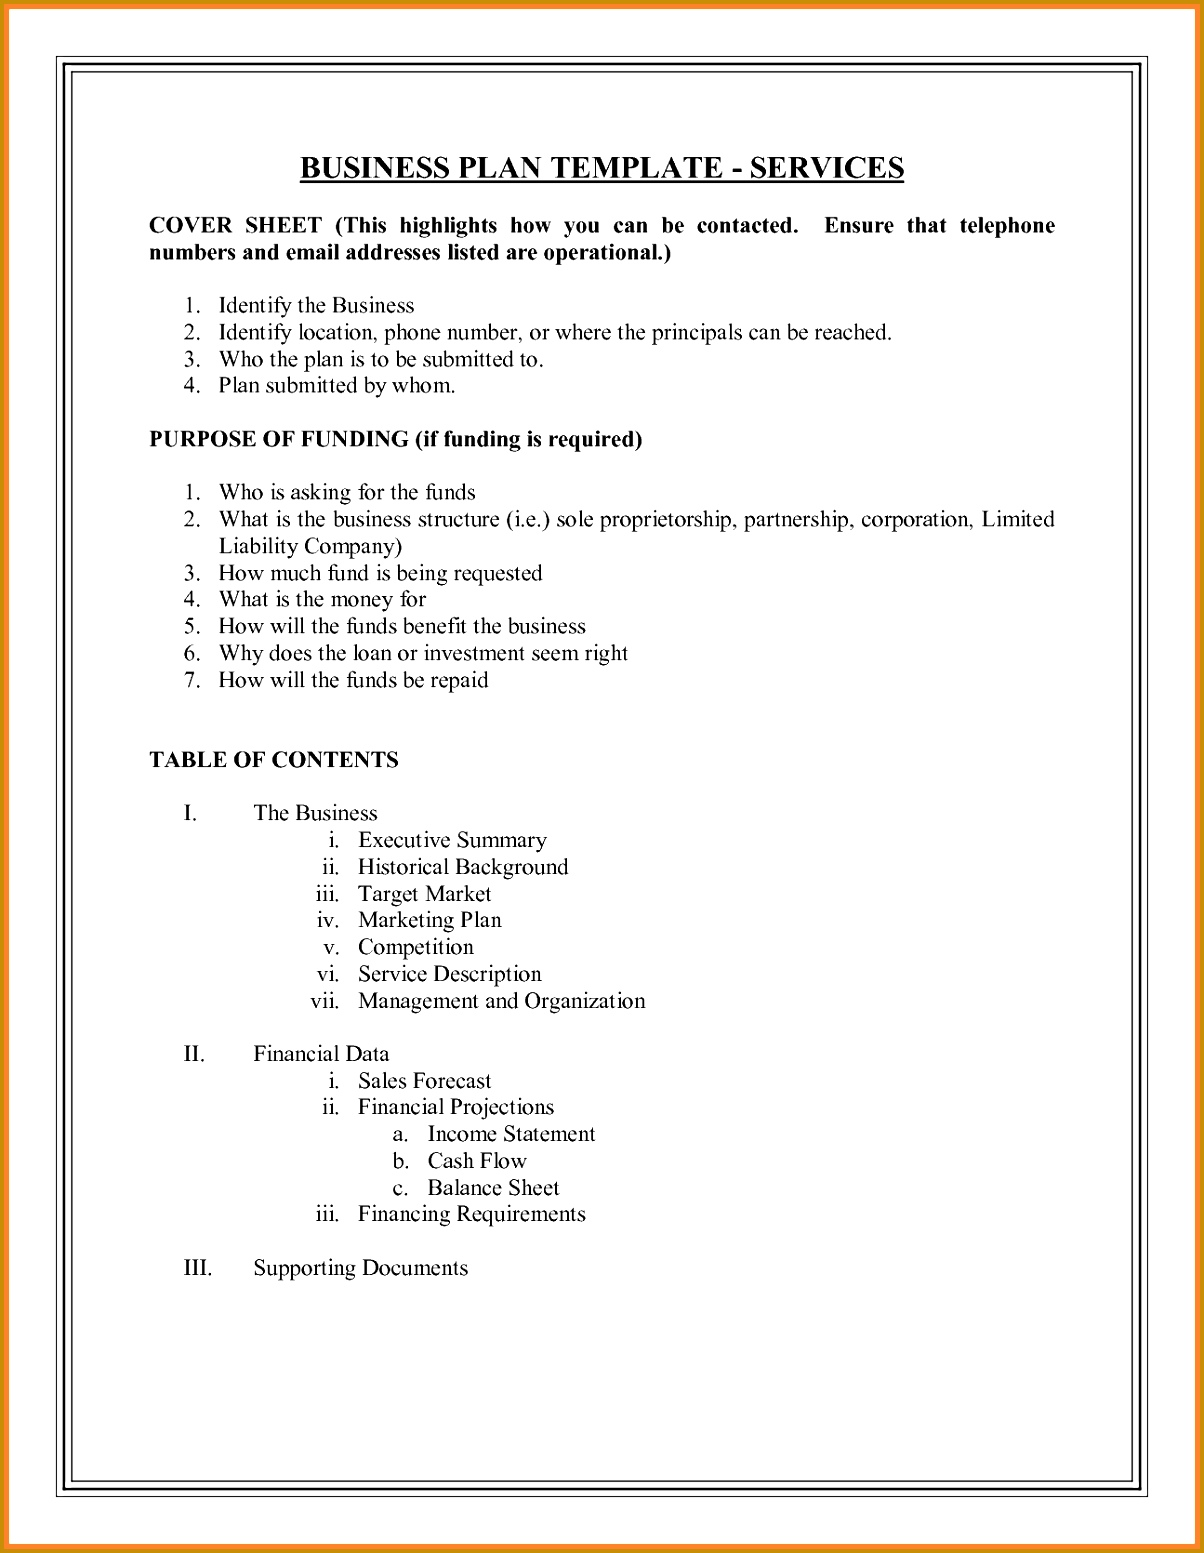 example of a business plan layout DOC business plan outline template 15531204